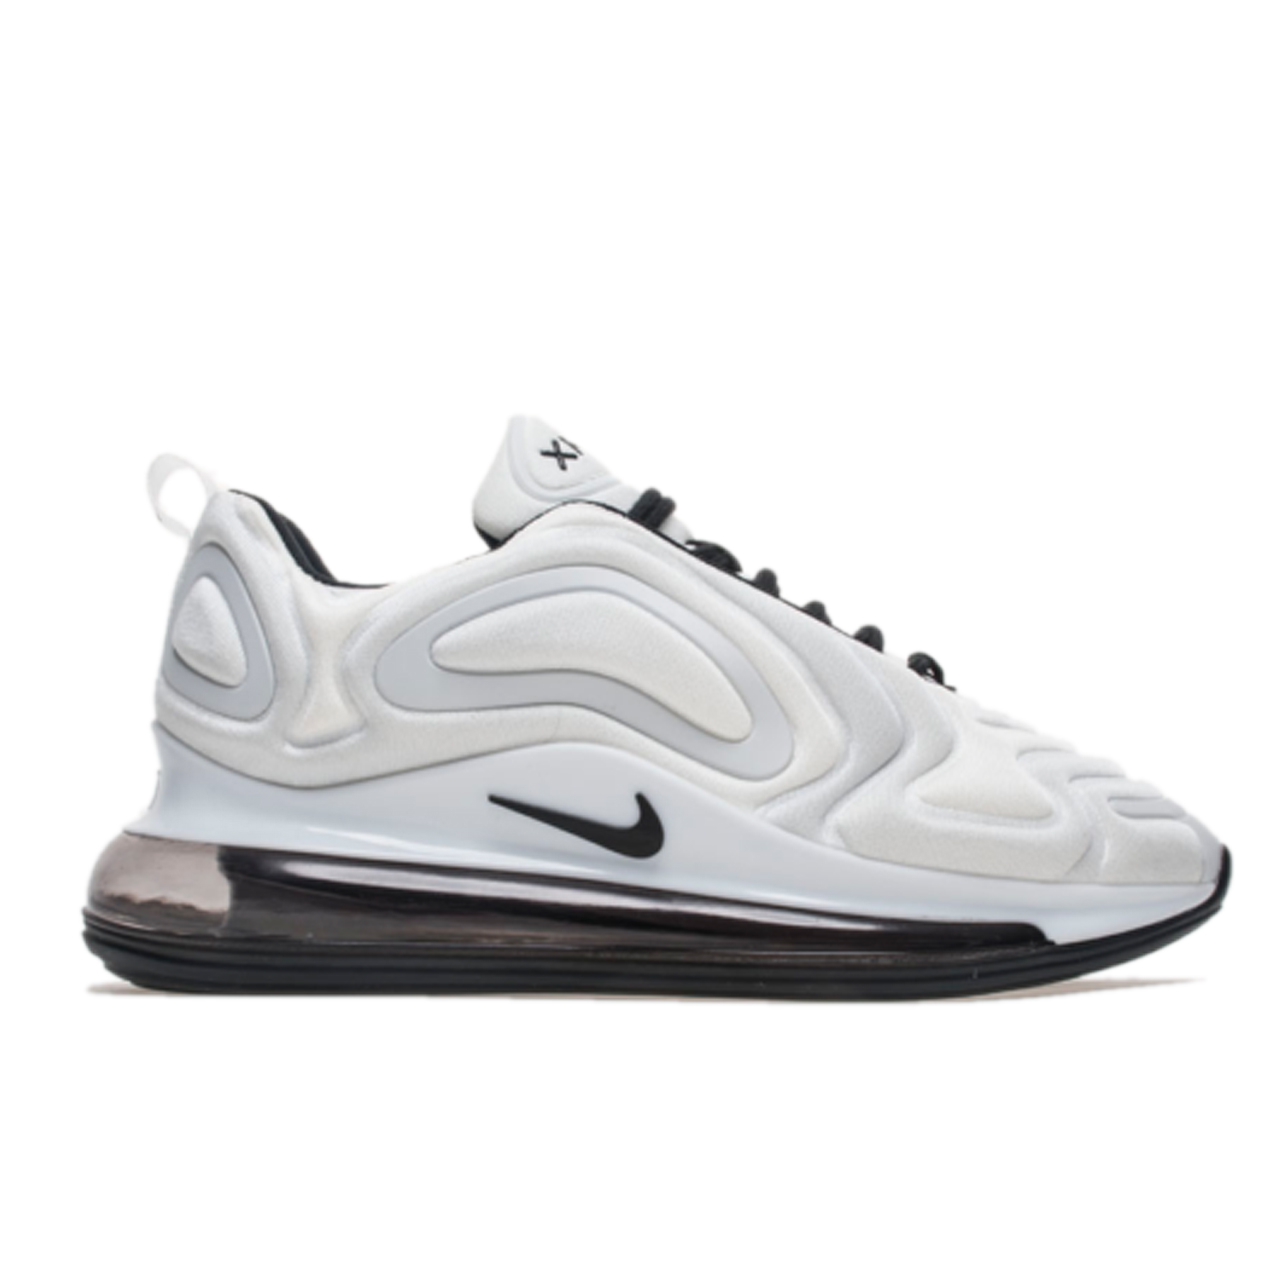 NIKE AIR MAX 720 White & Black унисекс (36-45)